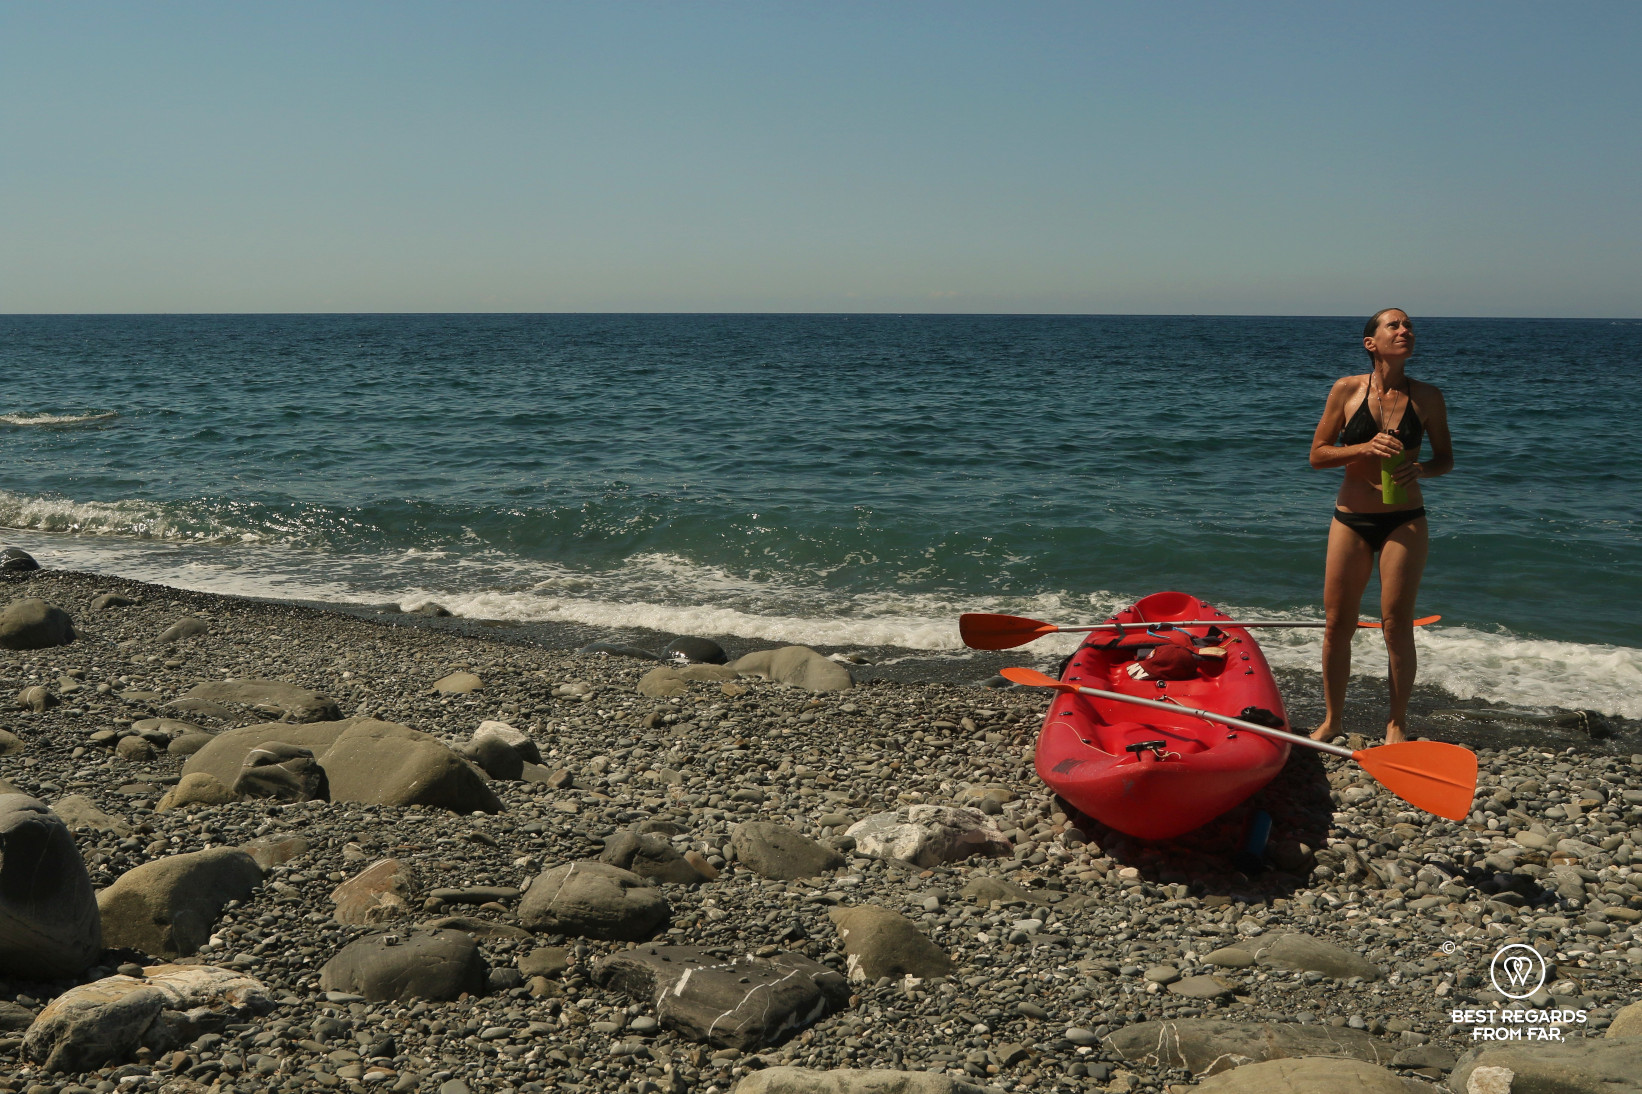 Woman in biking next to her red kayak on a rocky beach and the sea